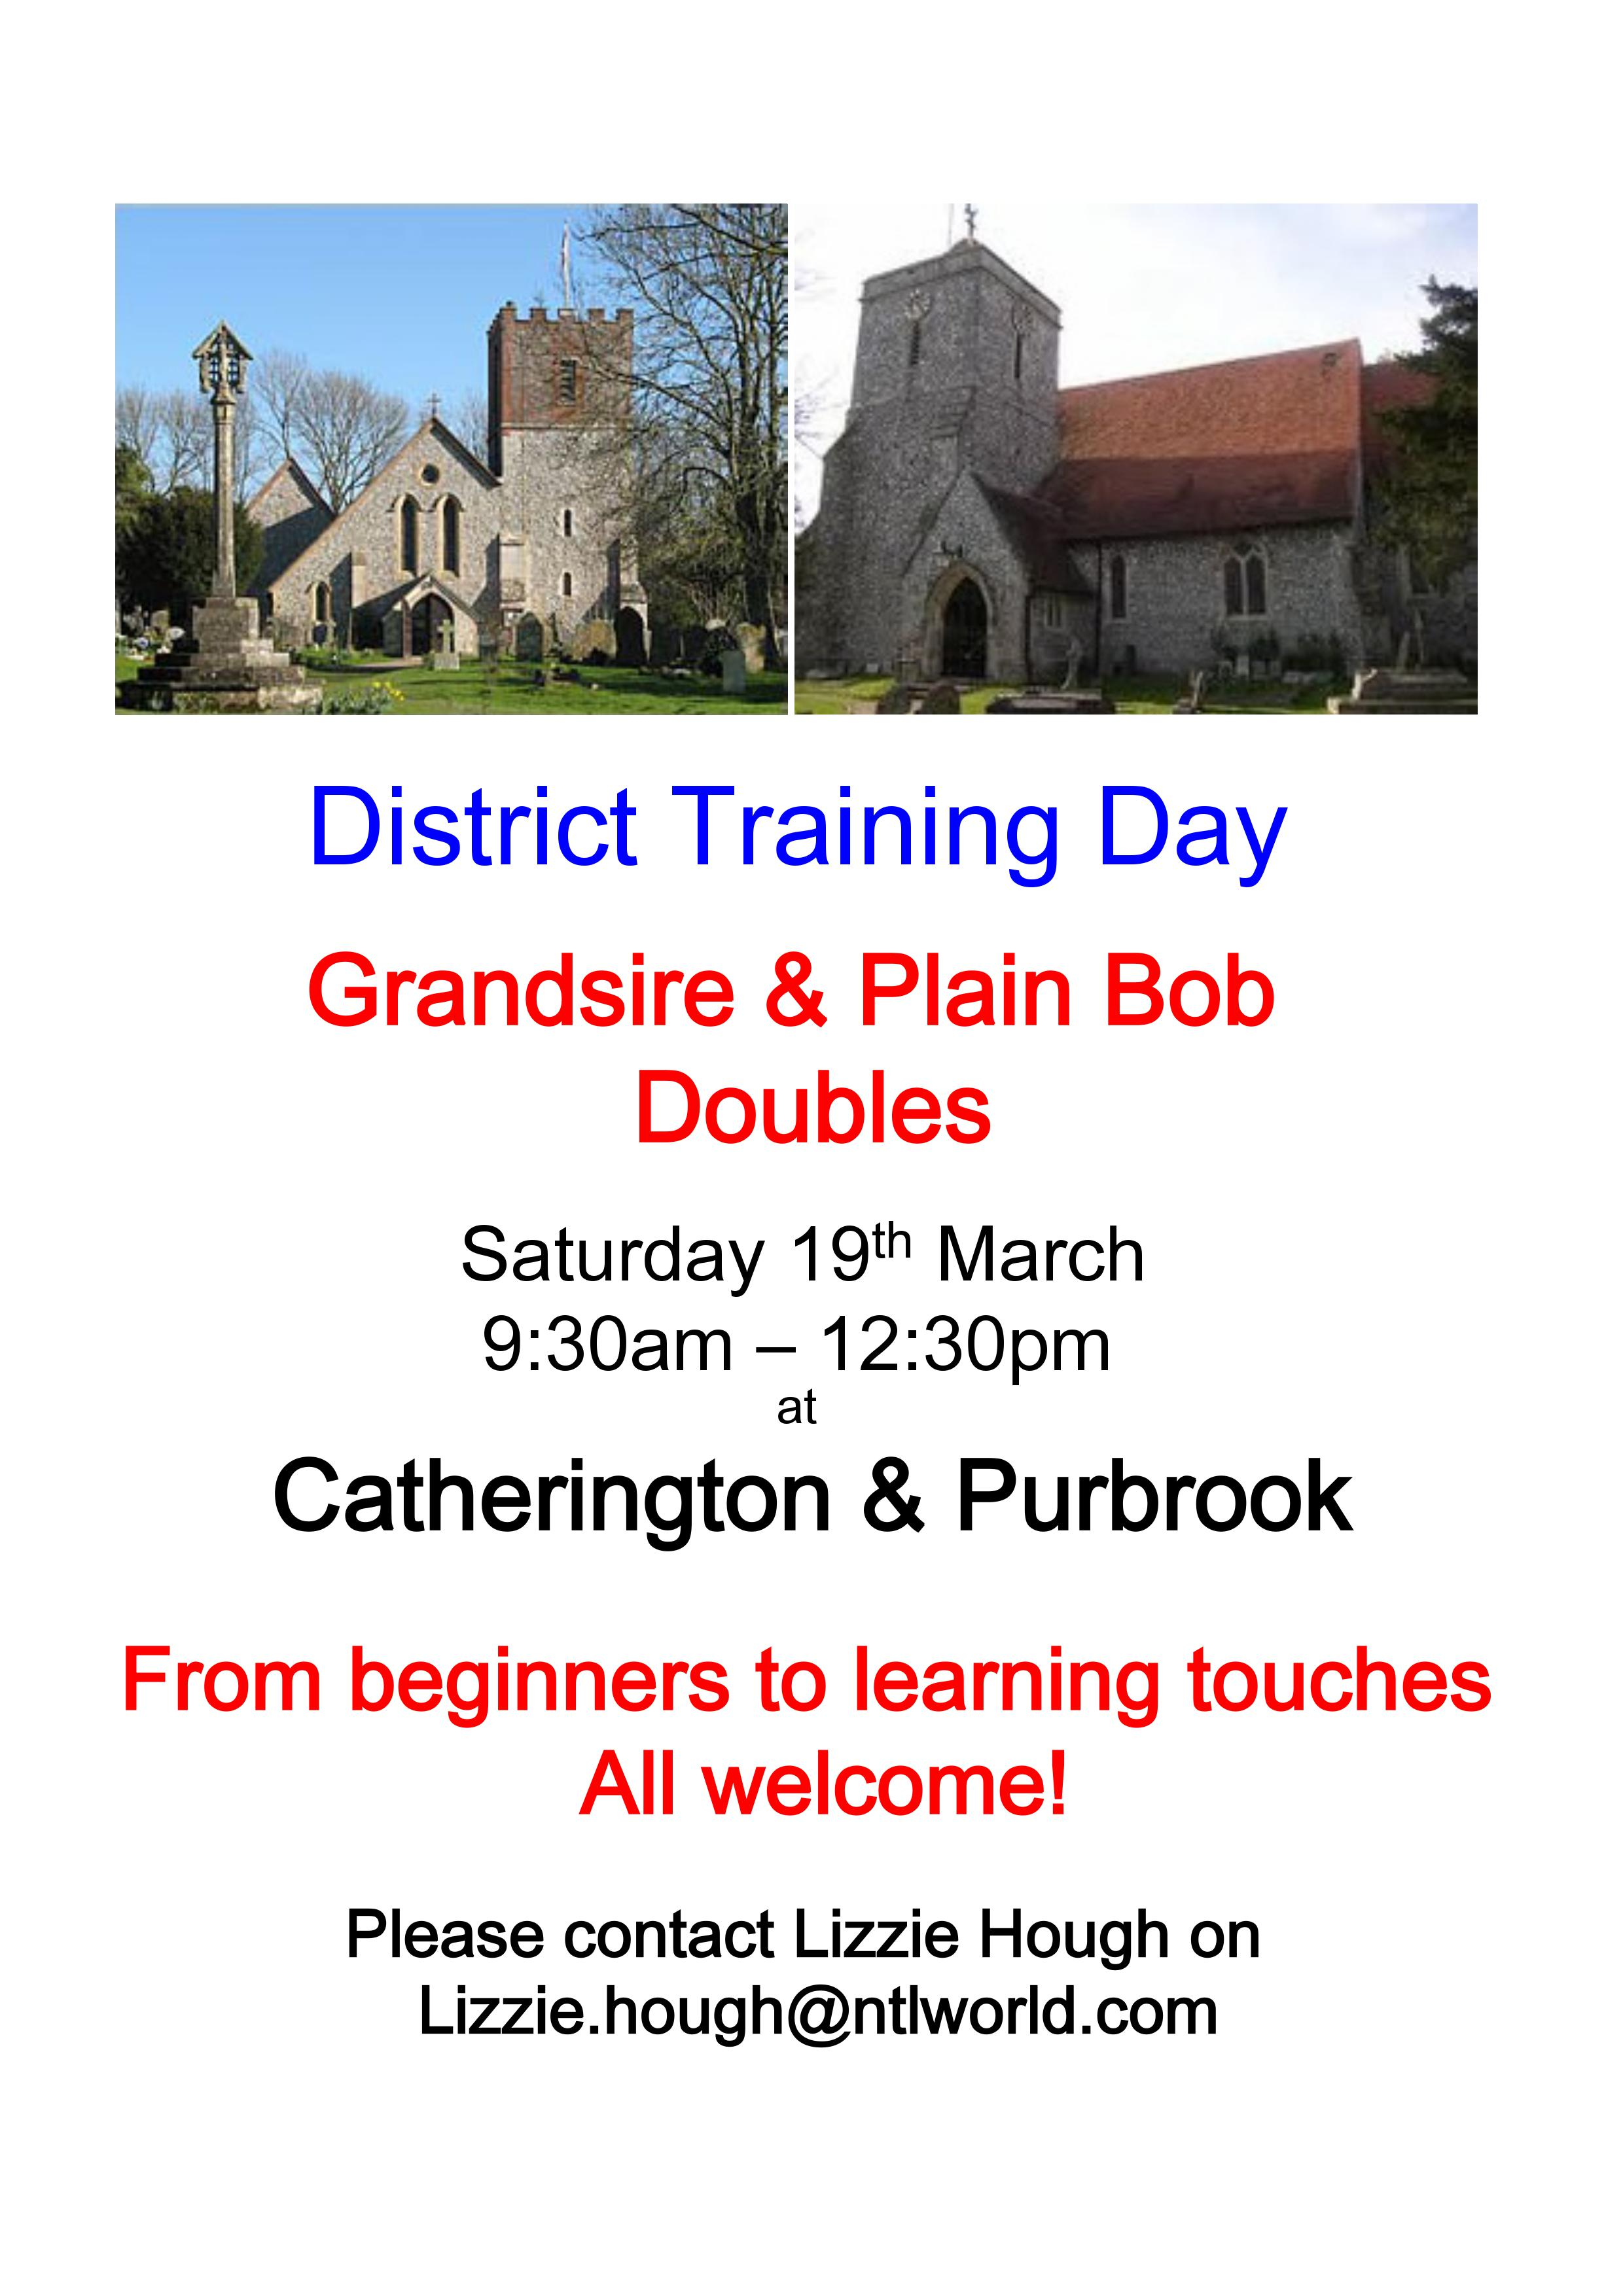 District Training Day